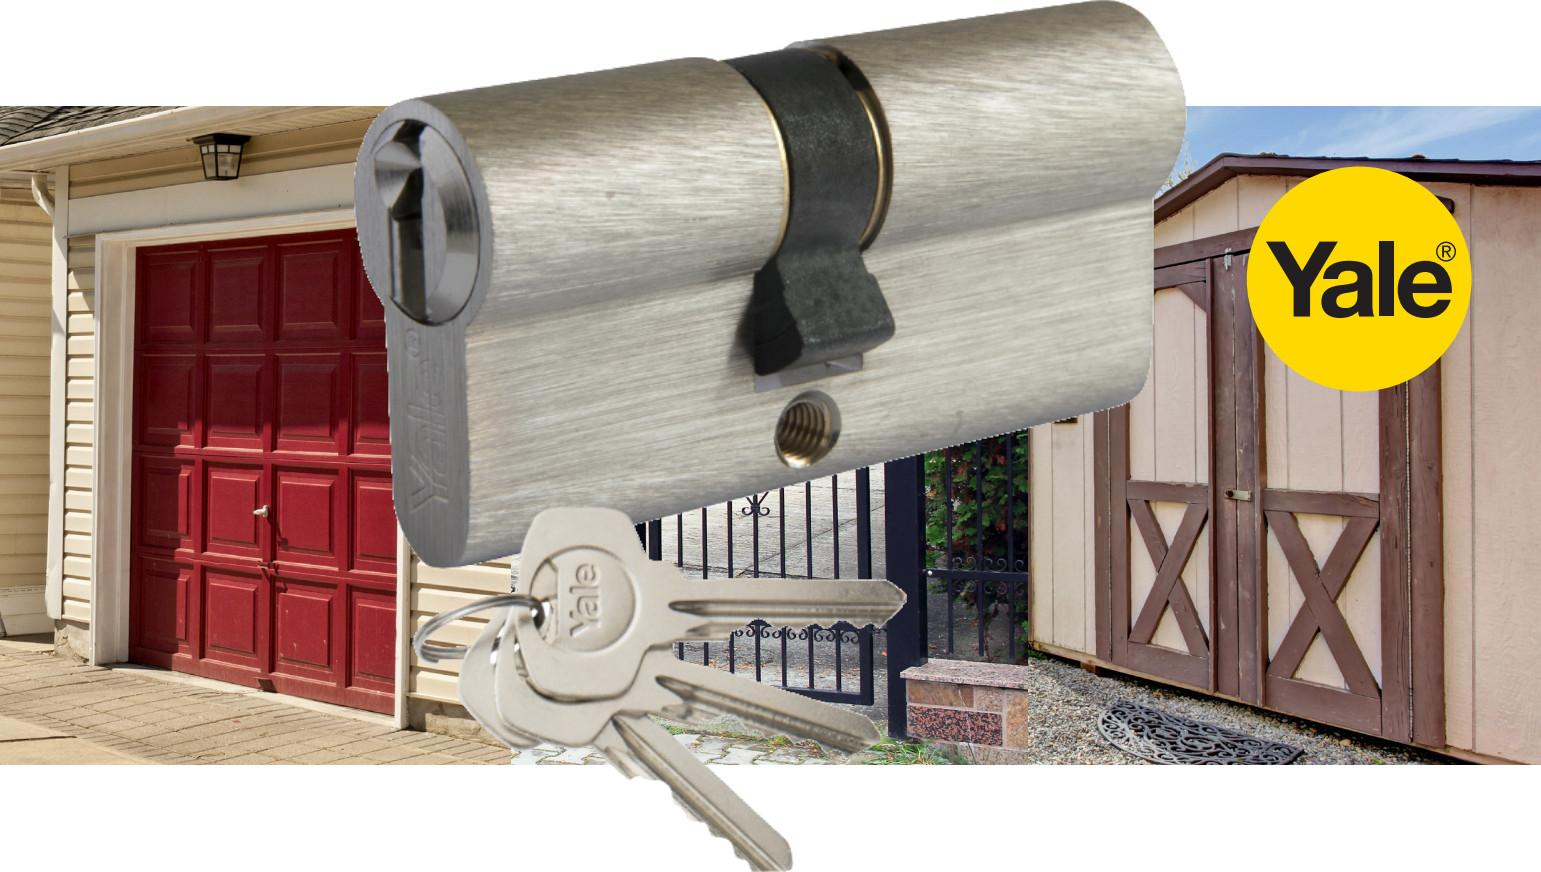 news/AssaAbloy/yale500banner.jpg